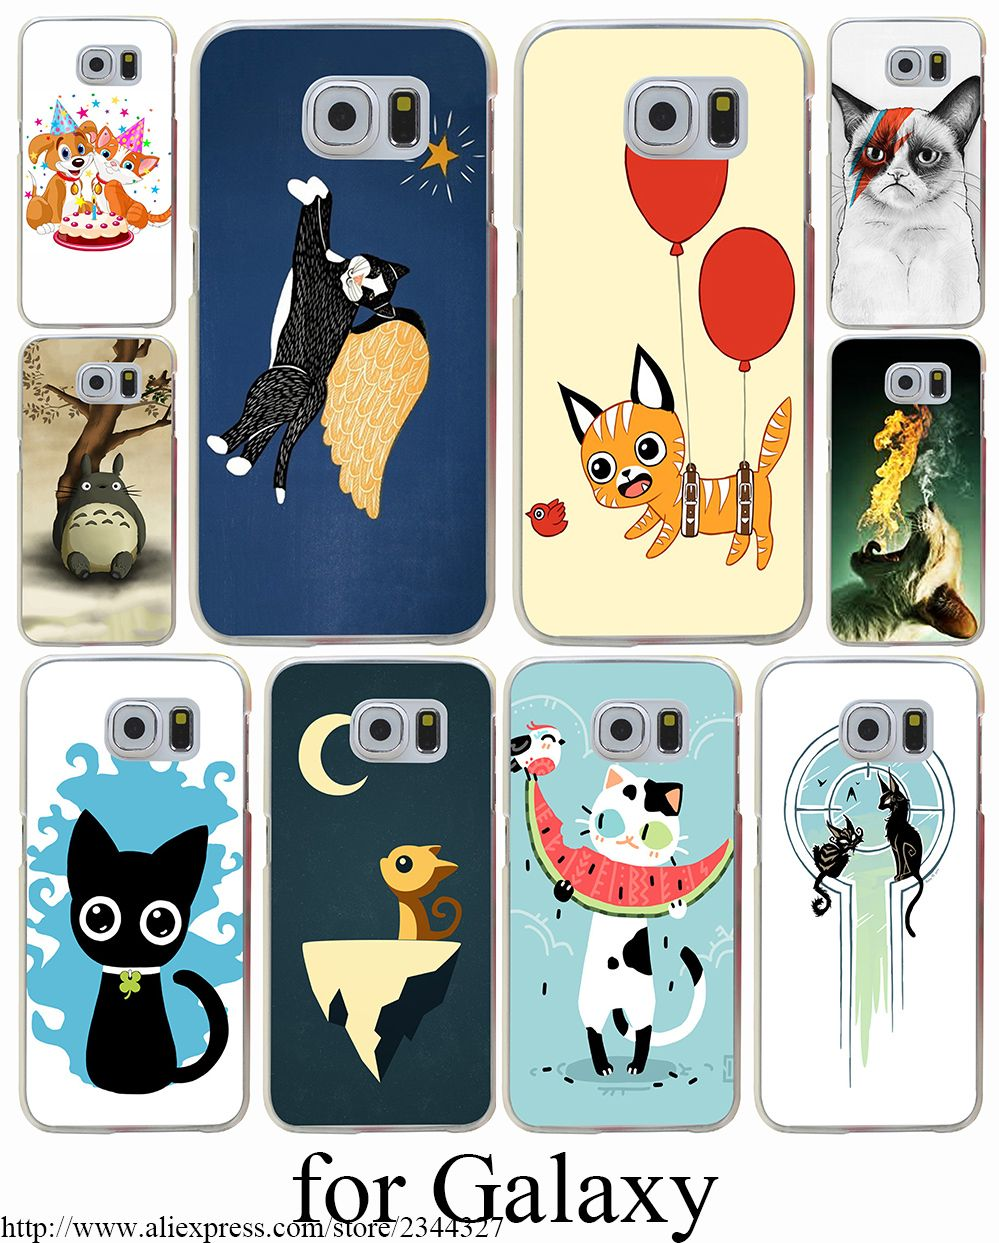 Cartoon Cute Cat Patterns Hard Transparent Case Cover for Samsung Galaxy S3 S4 S5 Mini S6 S7 S8 Edge Plus Case